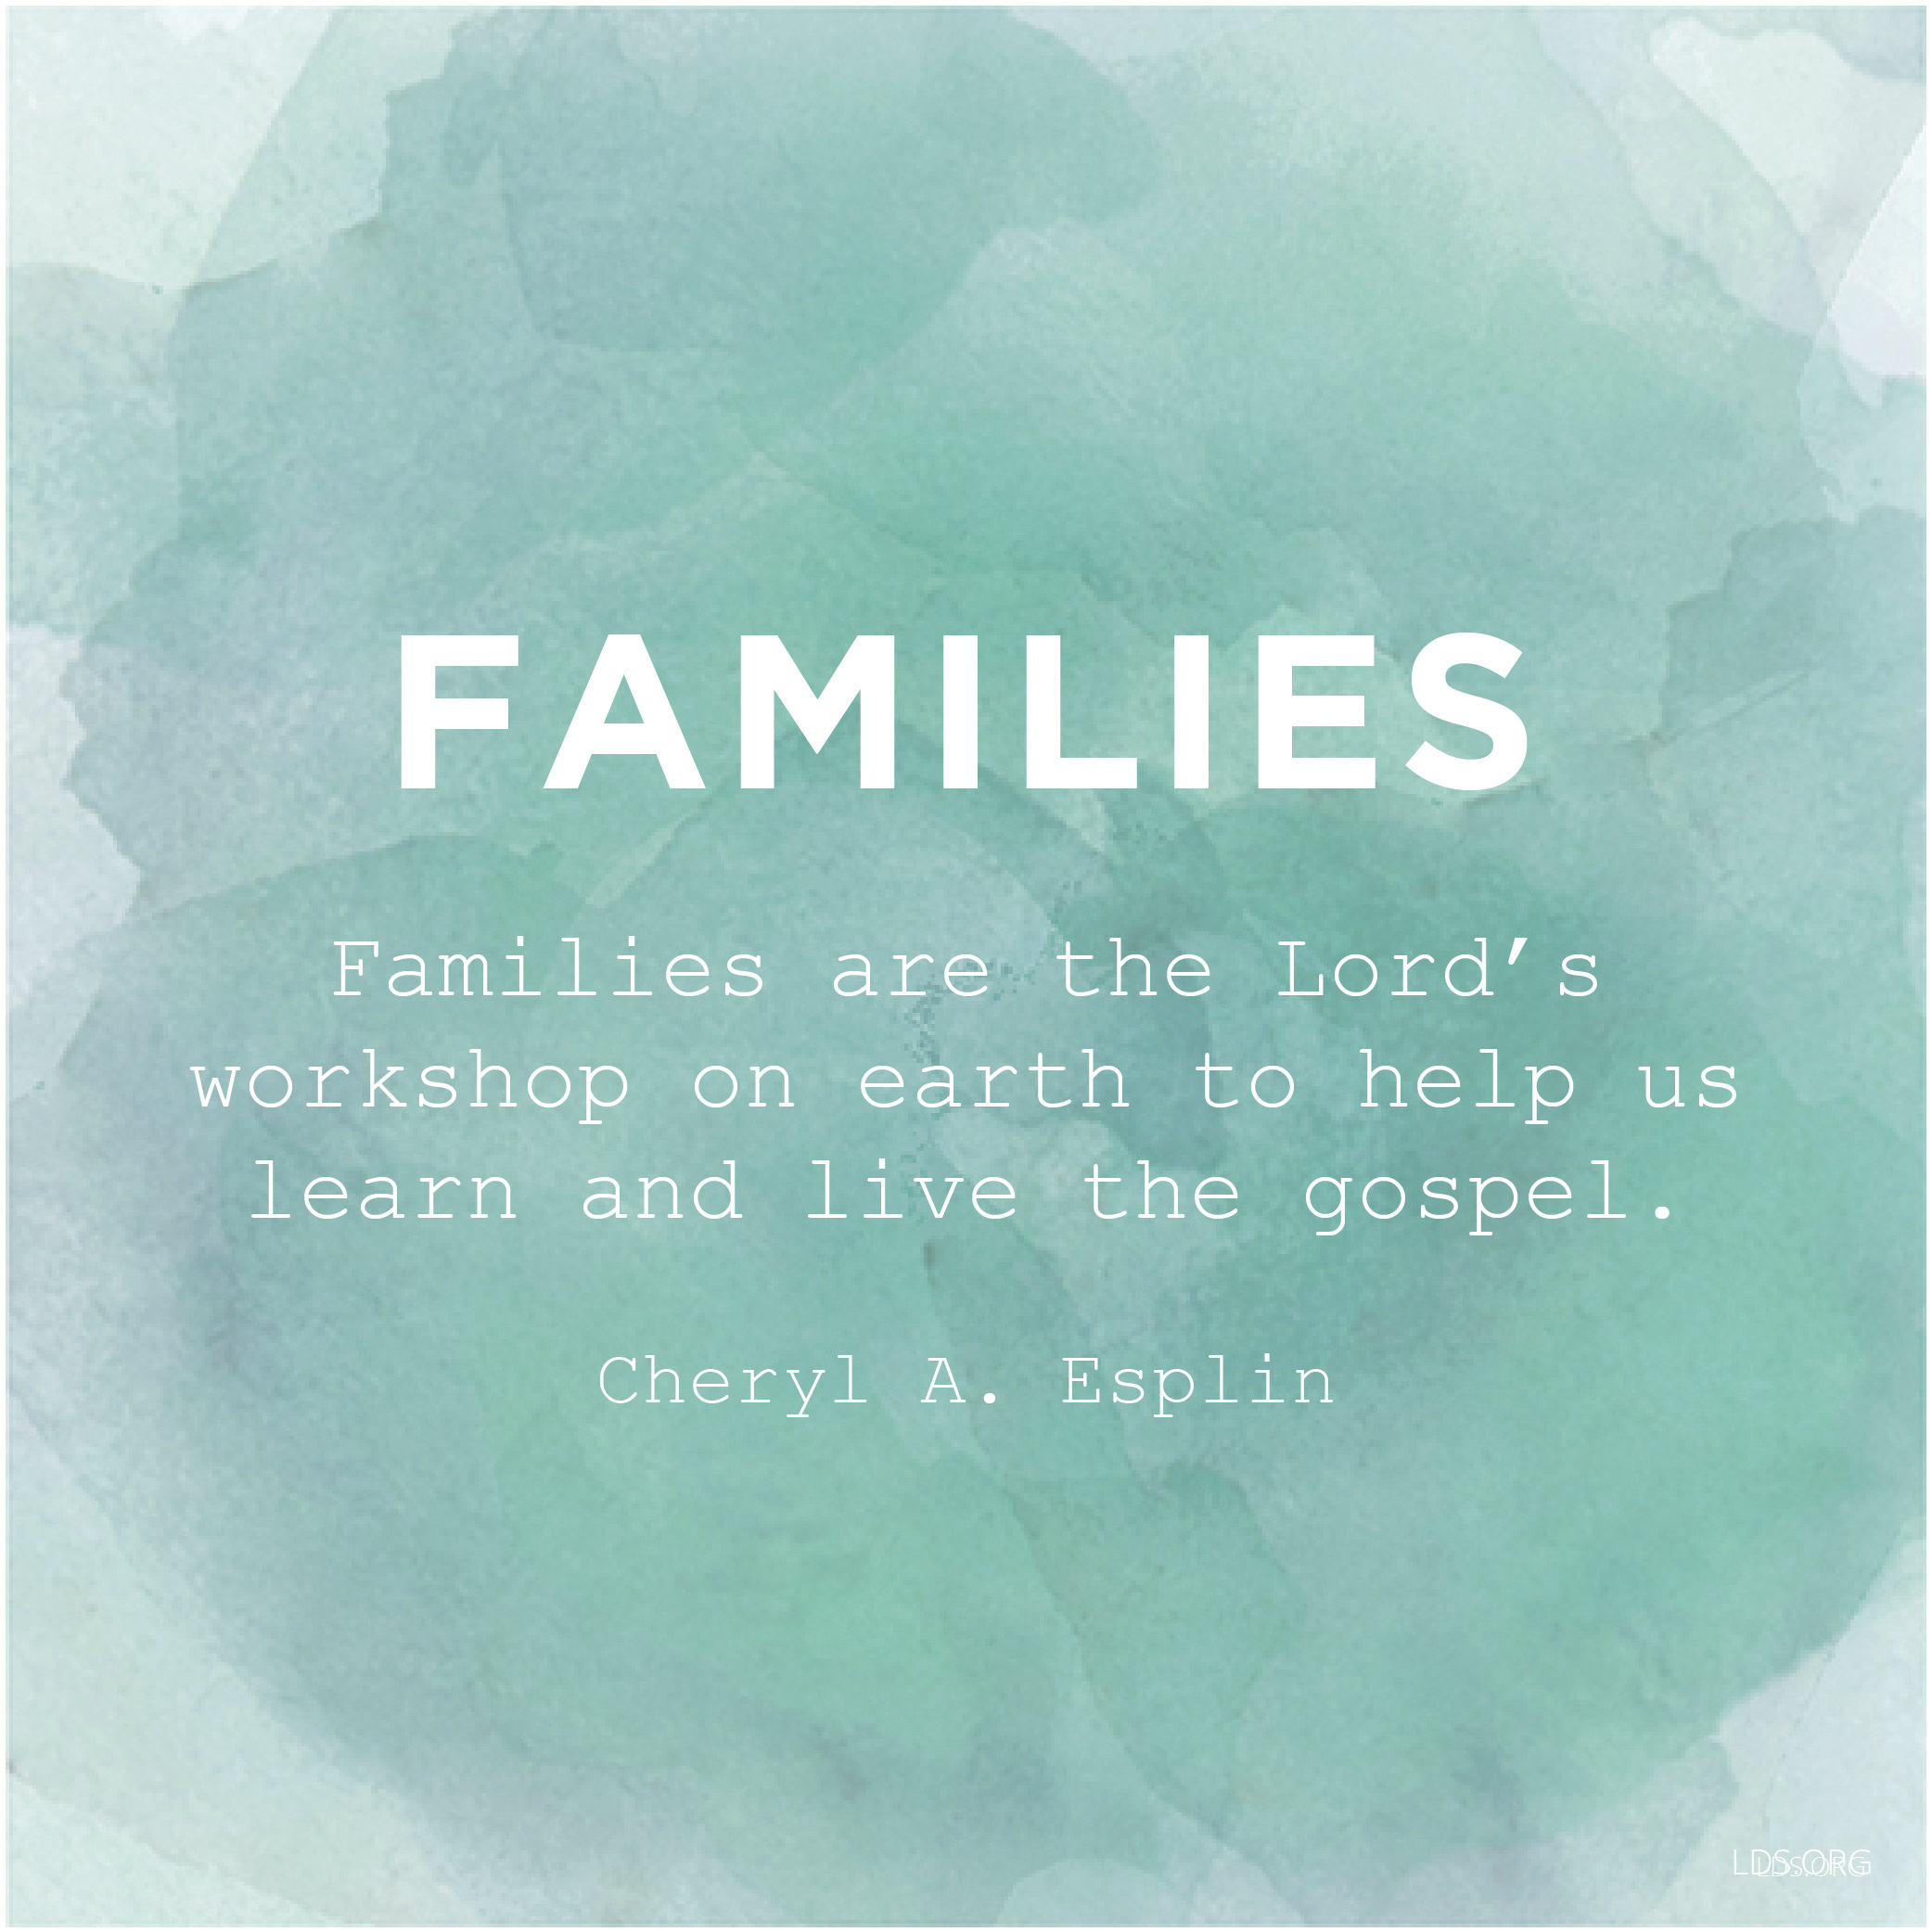 """""""Families are the Lord's workshop on earth to help us learn and live the gospel.""""—Sister Cheryl A. Esplin, """"Filling Our Homes with Light and Truth"""""""